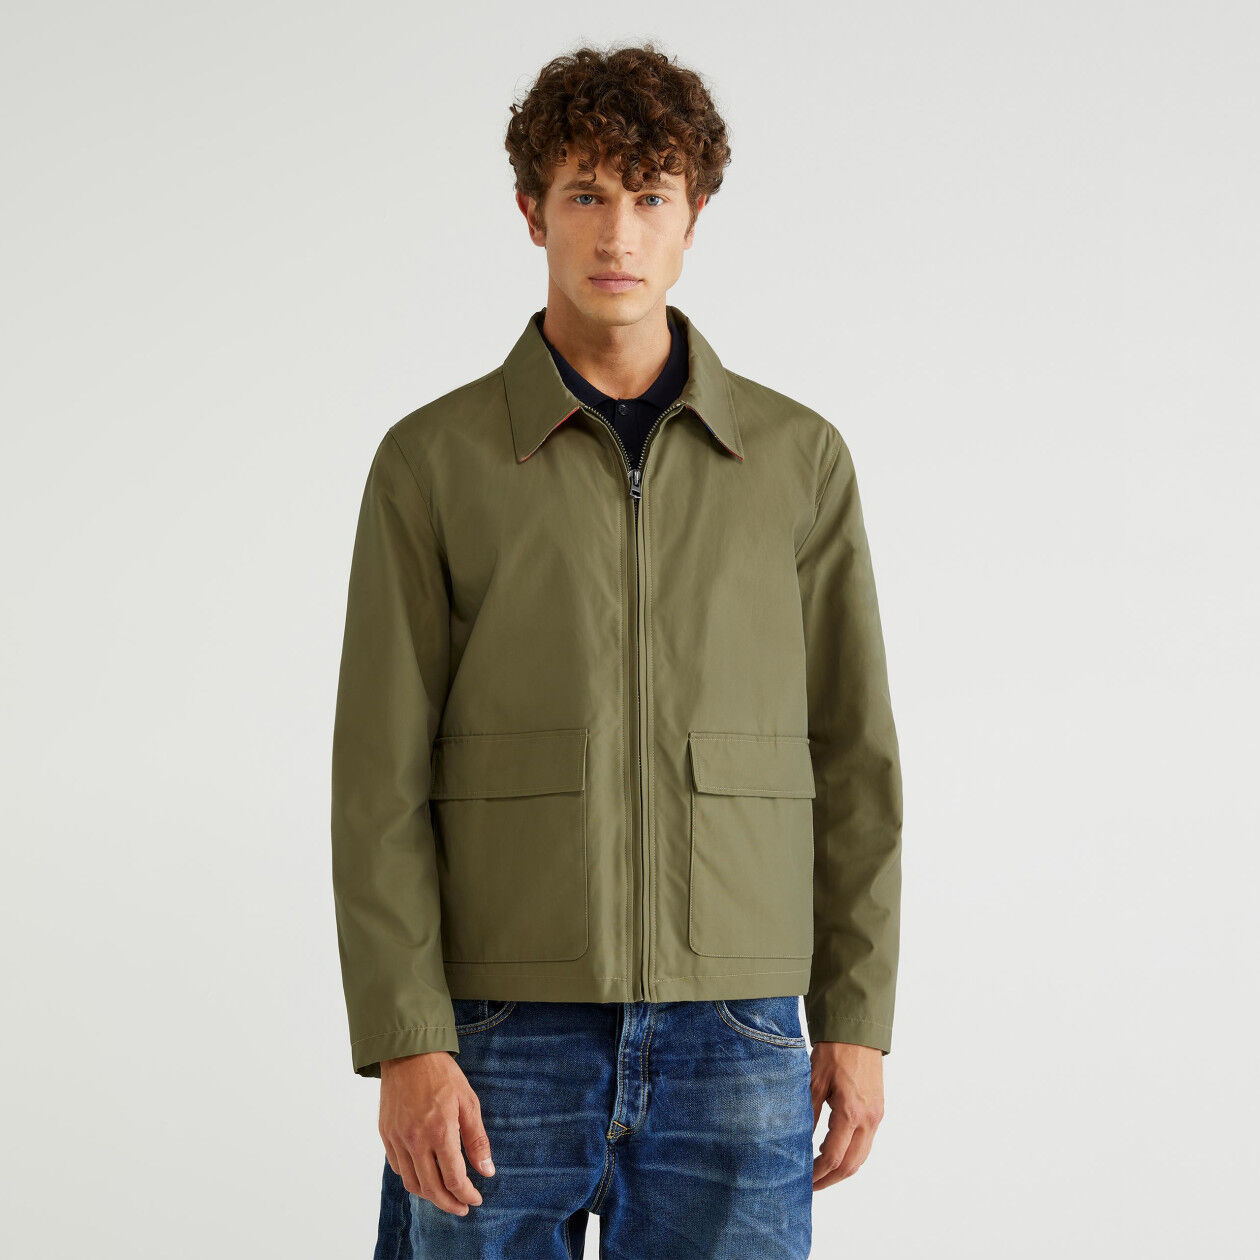 Regular fit nylon jacket